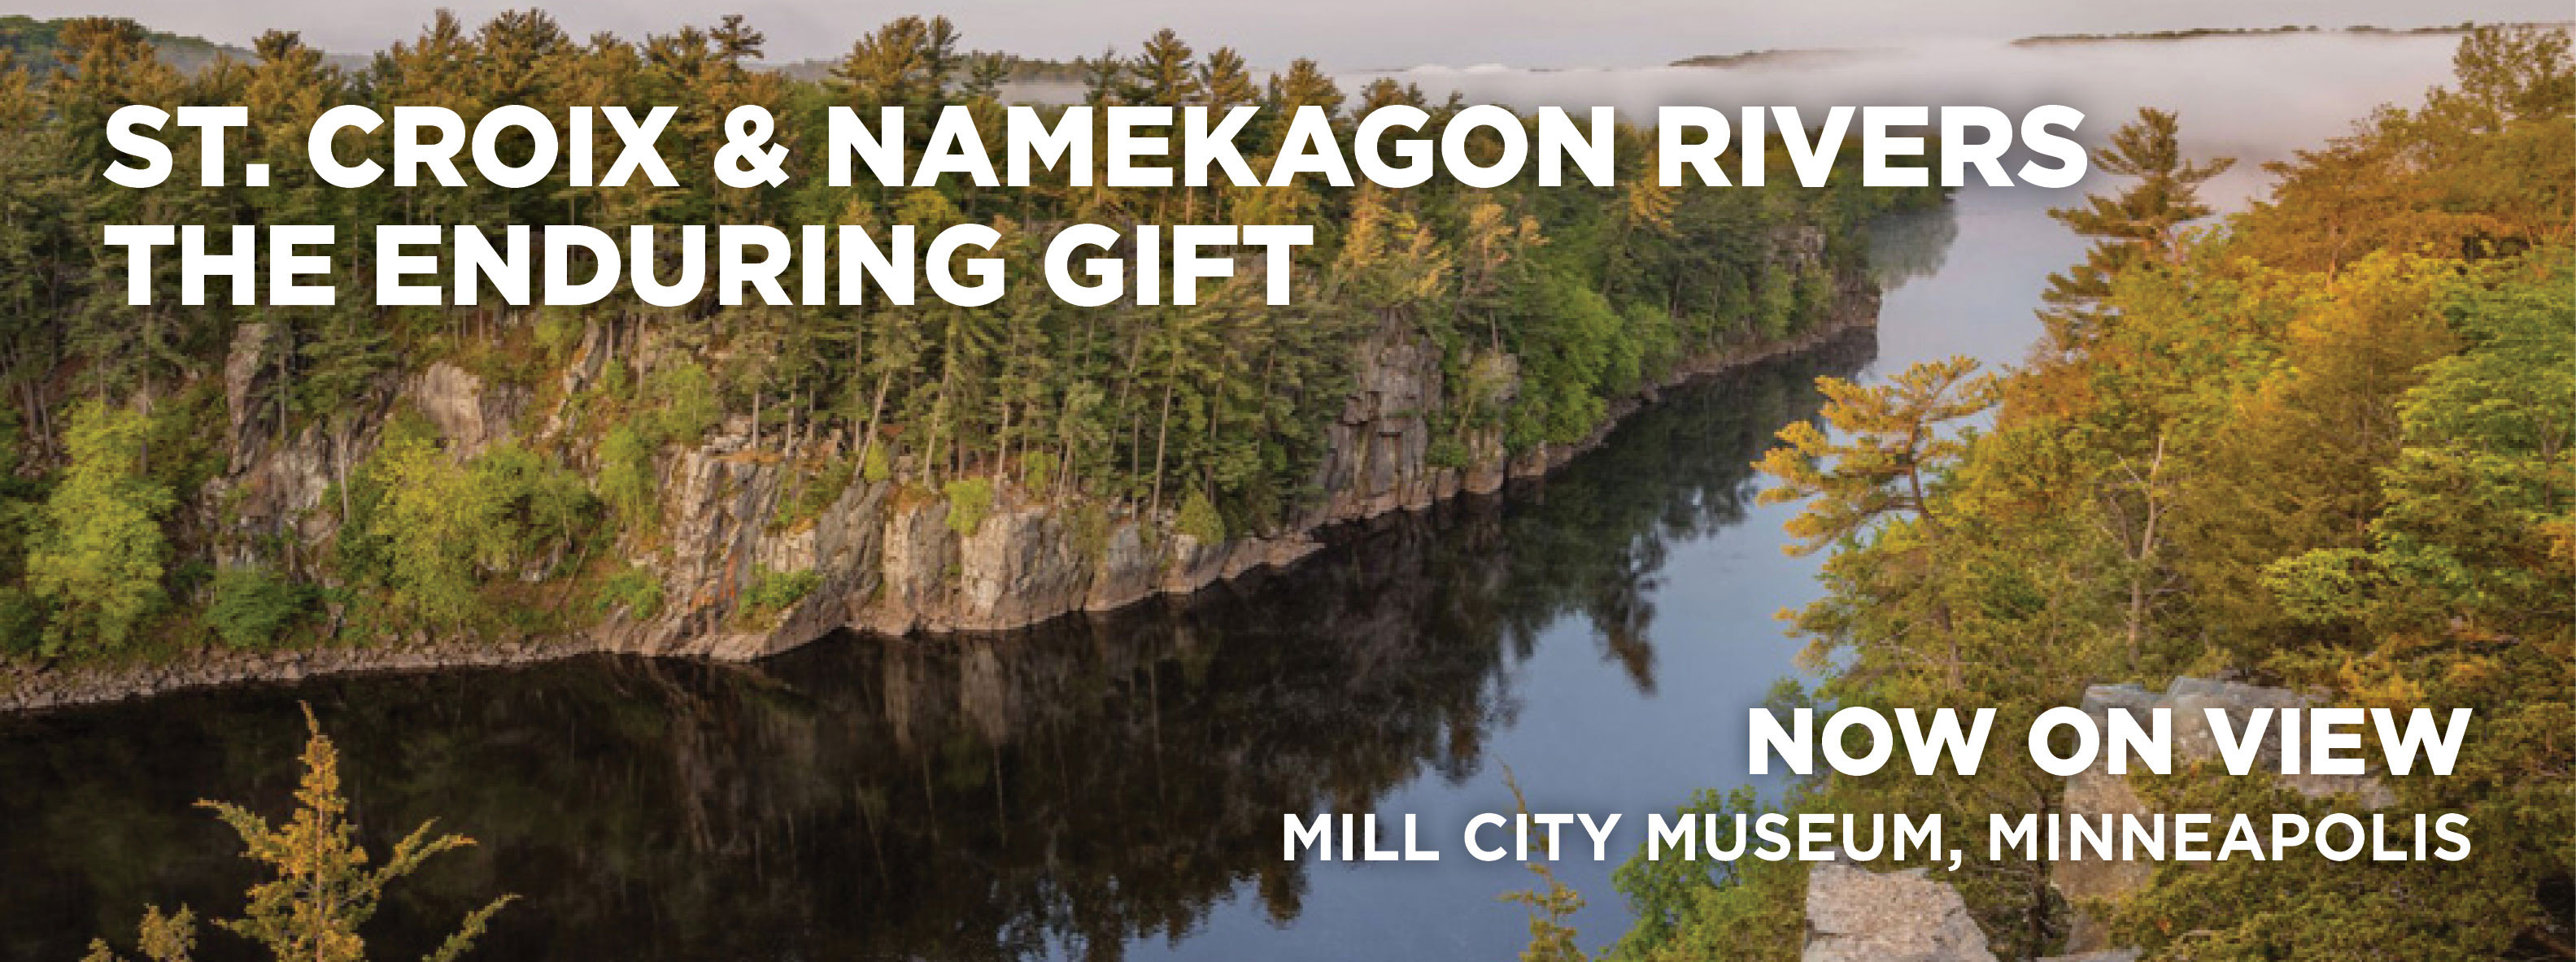 St. Croix & Namekagon Rivers: The Enduring Gift, Now on View, Mill City Museum